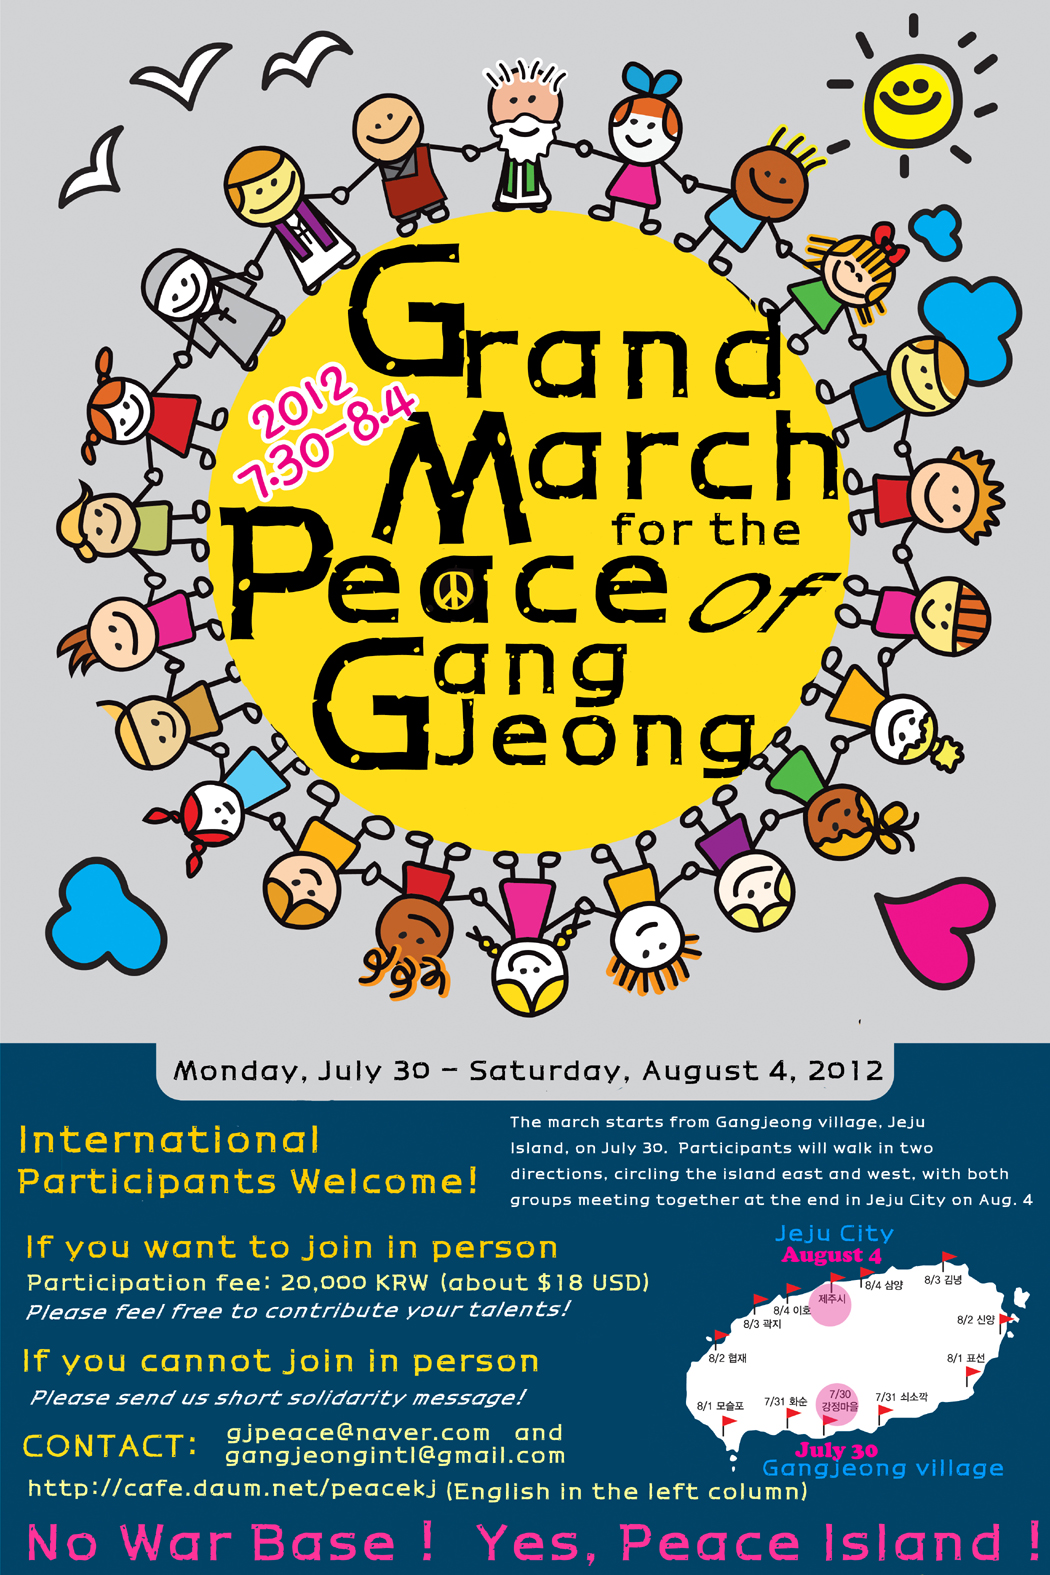 grand march for peace of Gangjeong